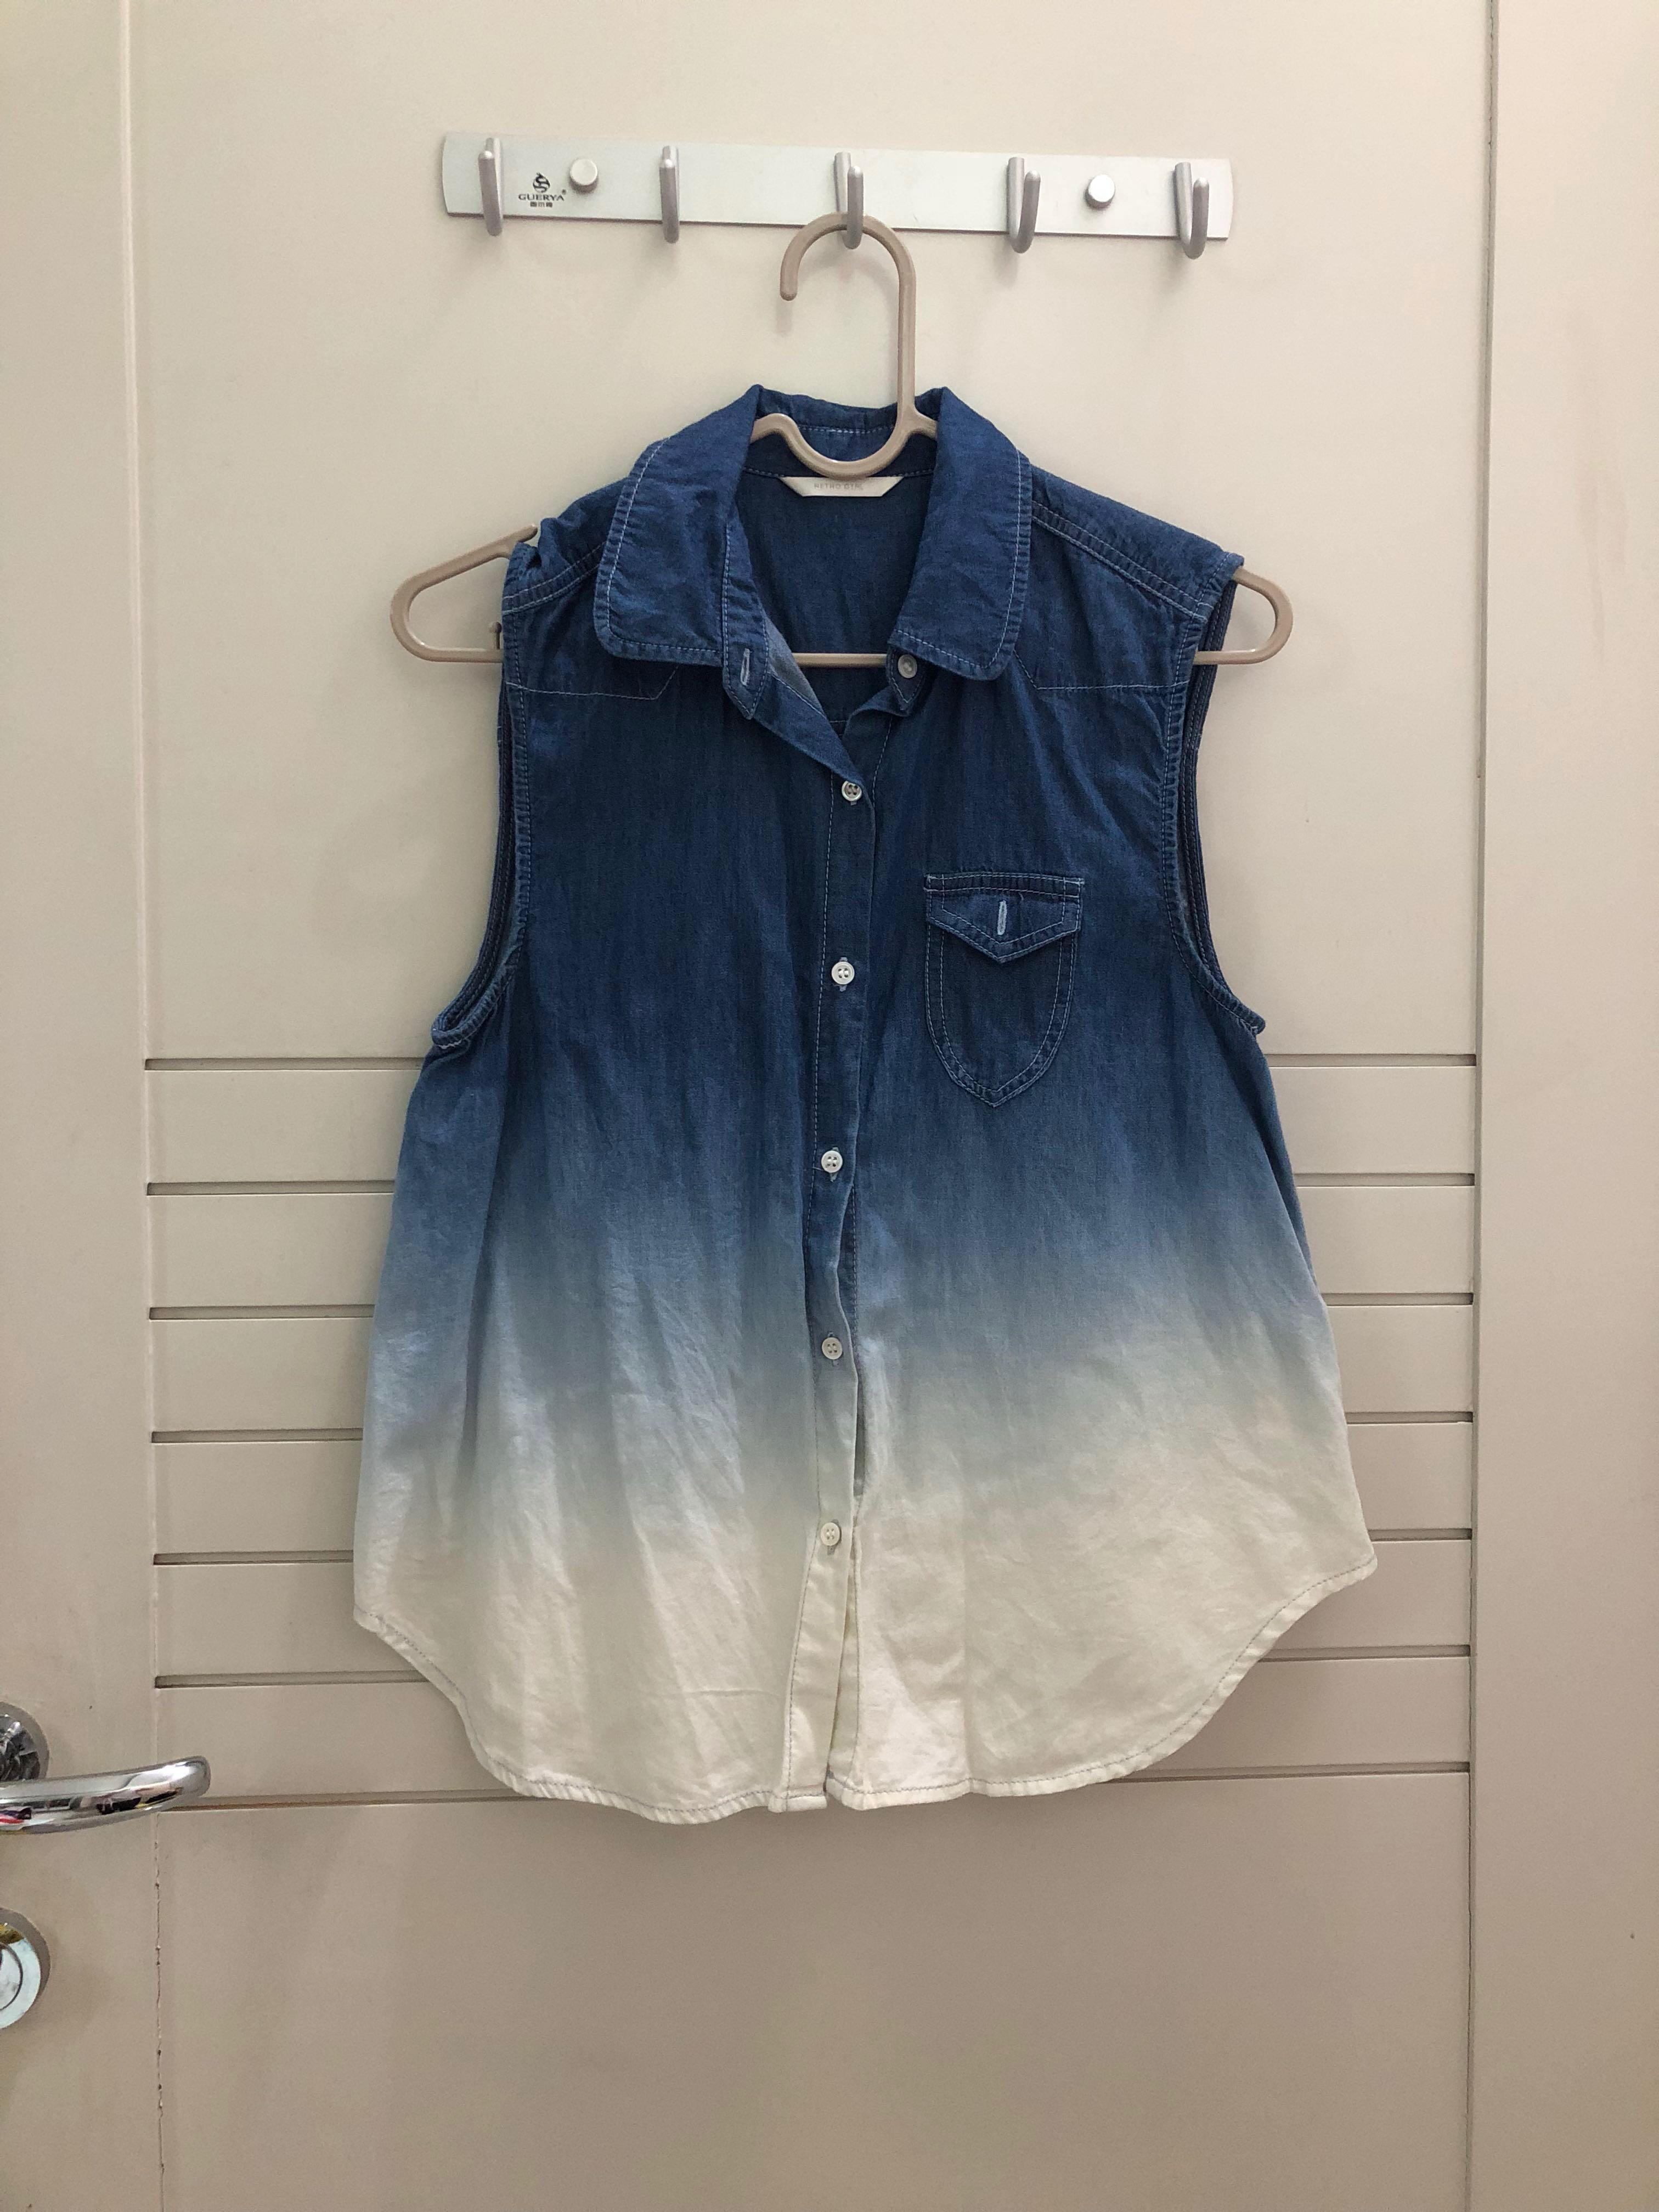 RETRO GIRL denim top